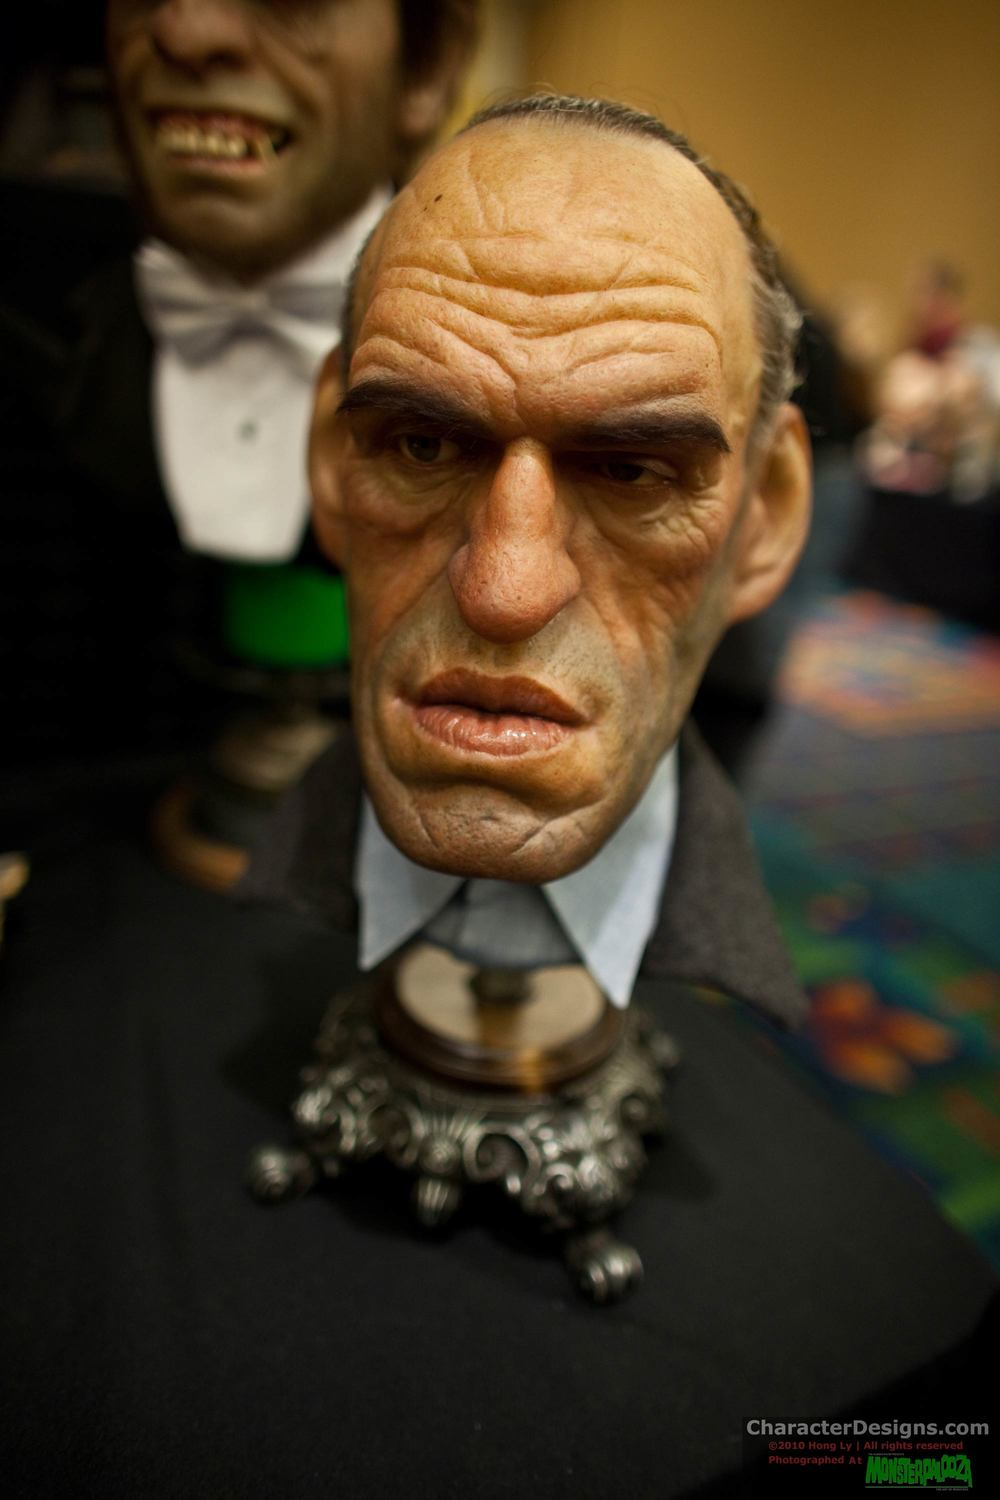 2010_Monsterpalooza_570.jpg